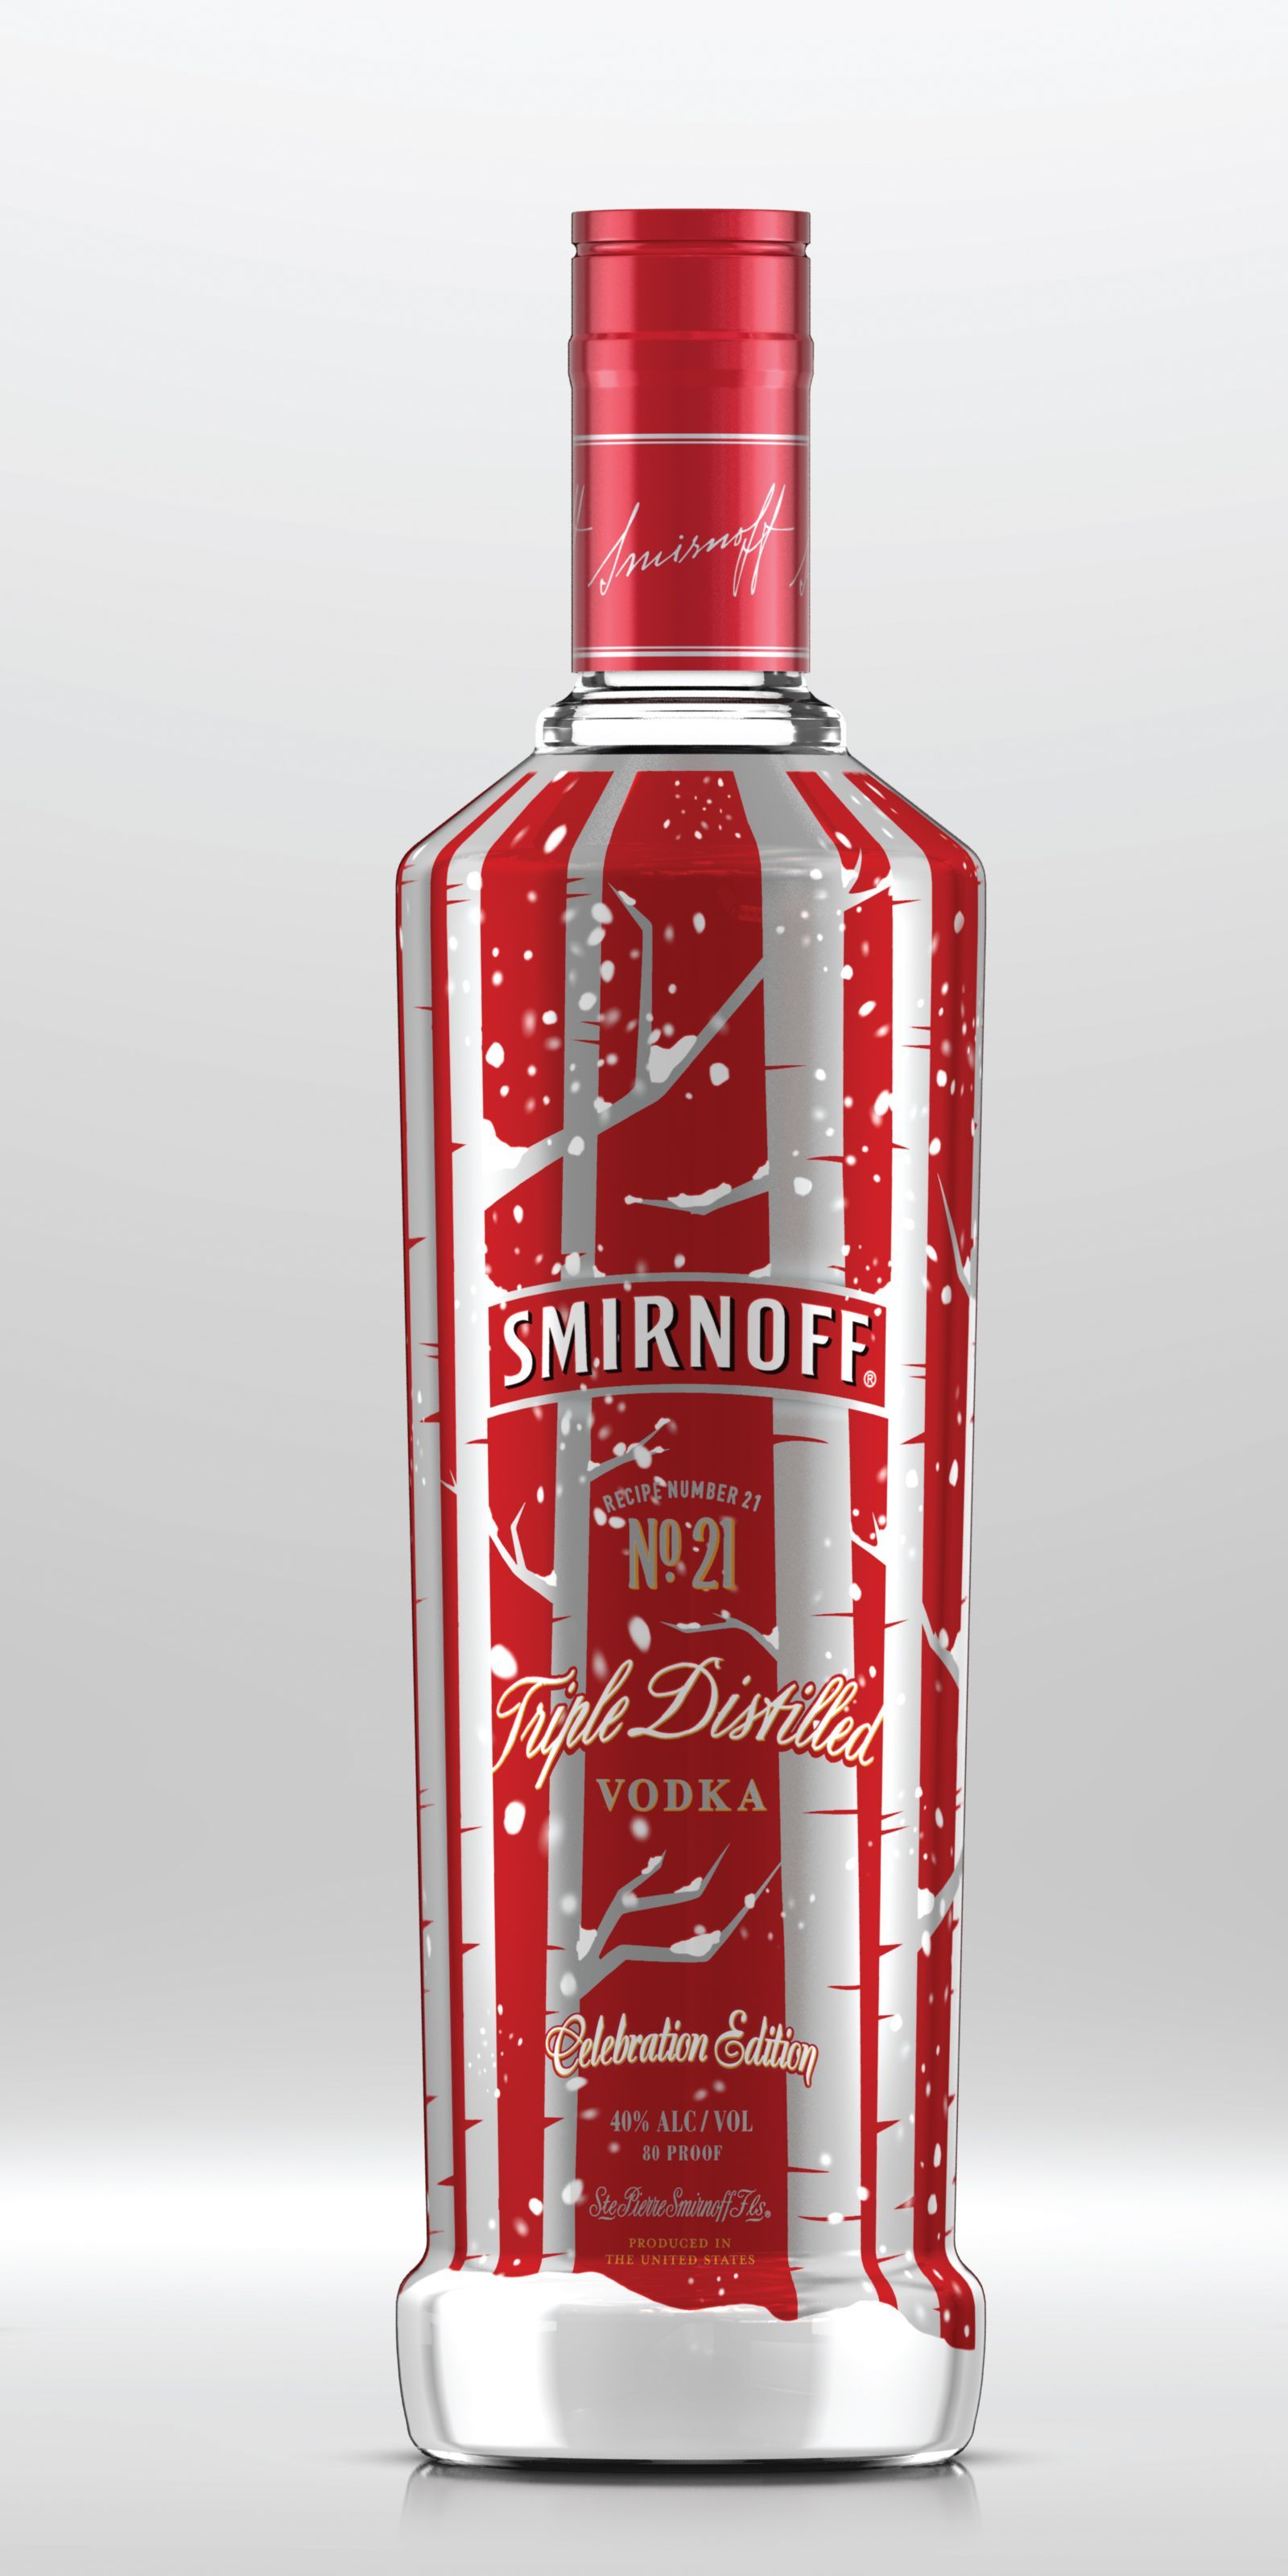 Smirnoff No 21 Vodka Celebration Edition Beverage Media Group Vodka Smirnoff Alcohol Packaging